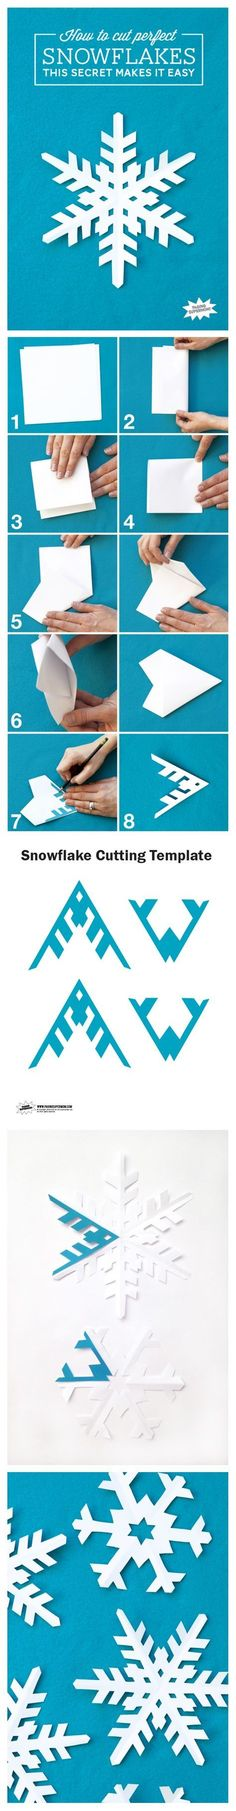 My kids love to cut out snowflakes using the good, old method where you fold up paper and cut out . Read moreHow to Cut Perfect Snowflakes Paper Snowflakes, Christmas Snowflakes, Christmas Art, Christmas Ornaments, Snowflake Snowflake, Decoration Creche, Xmas Decorations, Snowflake Template, Diy And Crafts